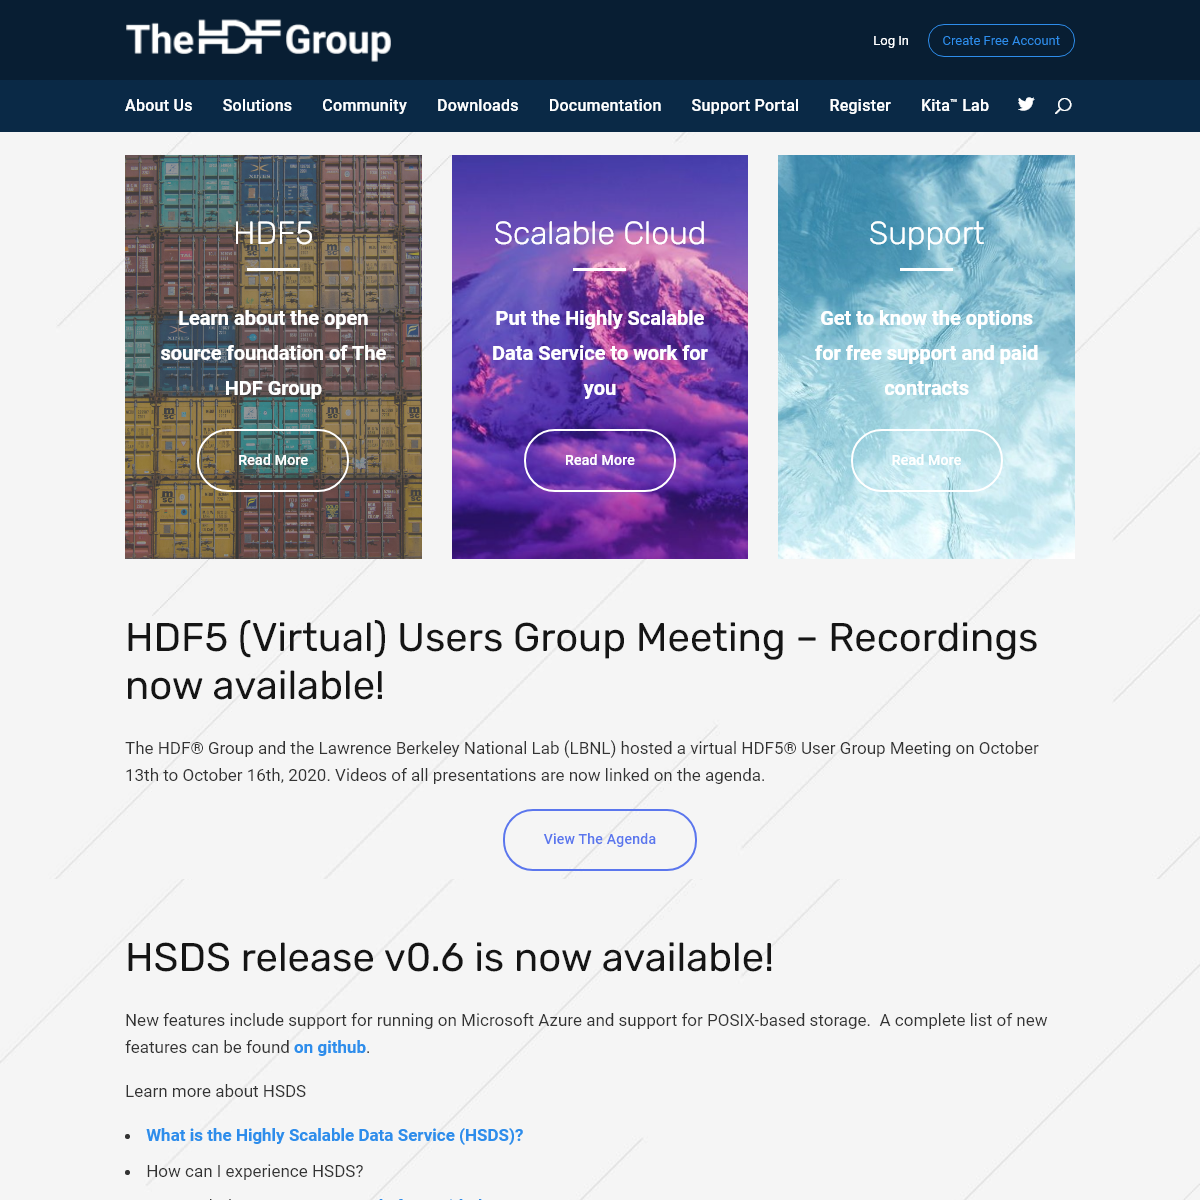 The HDF Group - ensuring long-term access and usability of HDF data and supporting users of HDF technologies